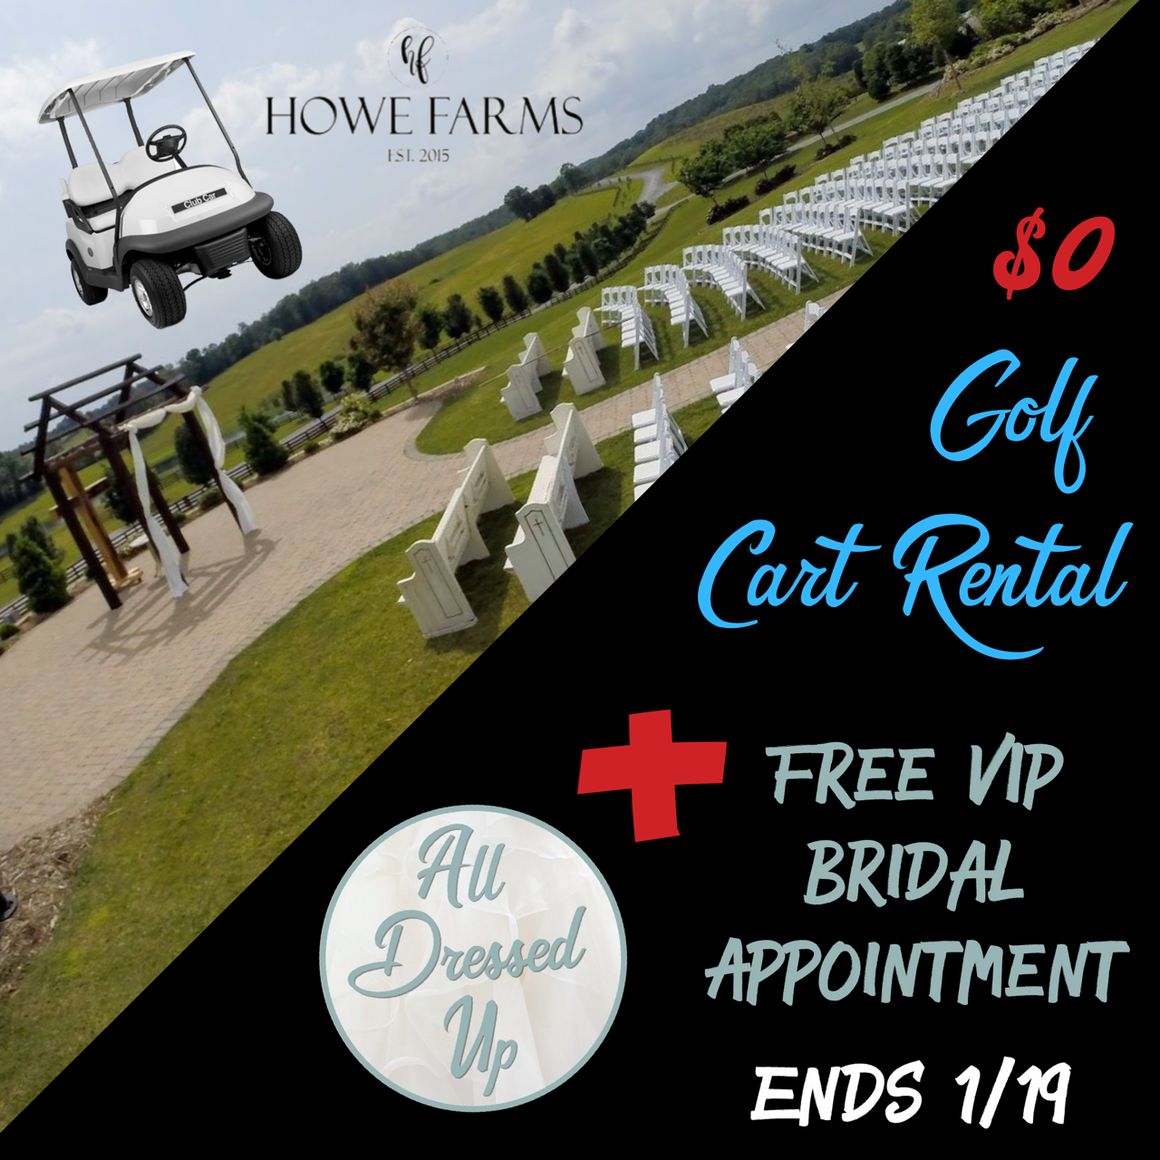 Chattanooga Bridal Shop | $0 VIP Bridal Appointment, through 1/19!